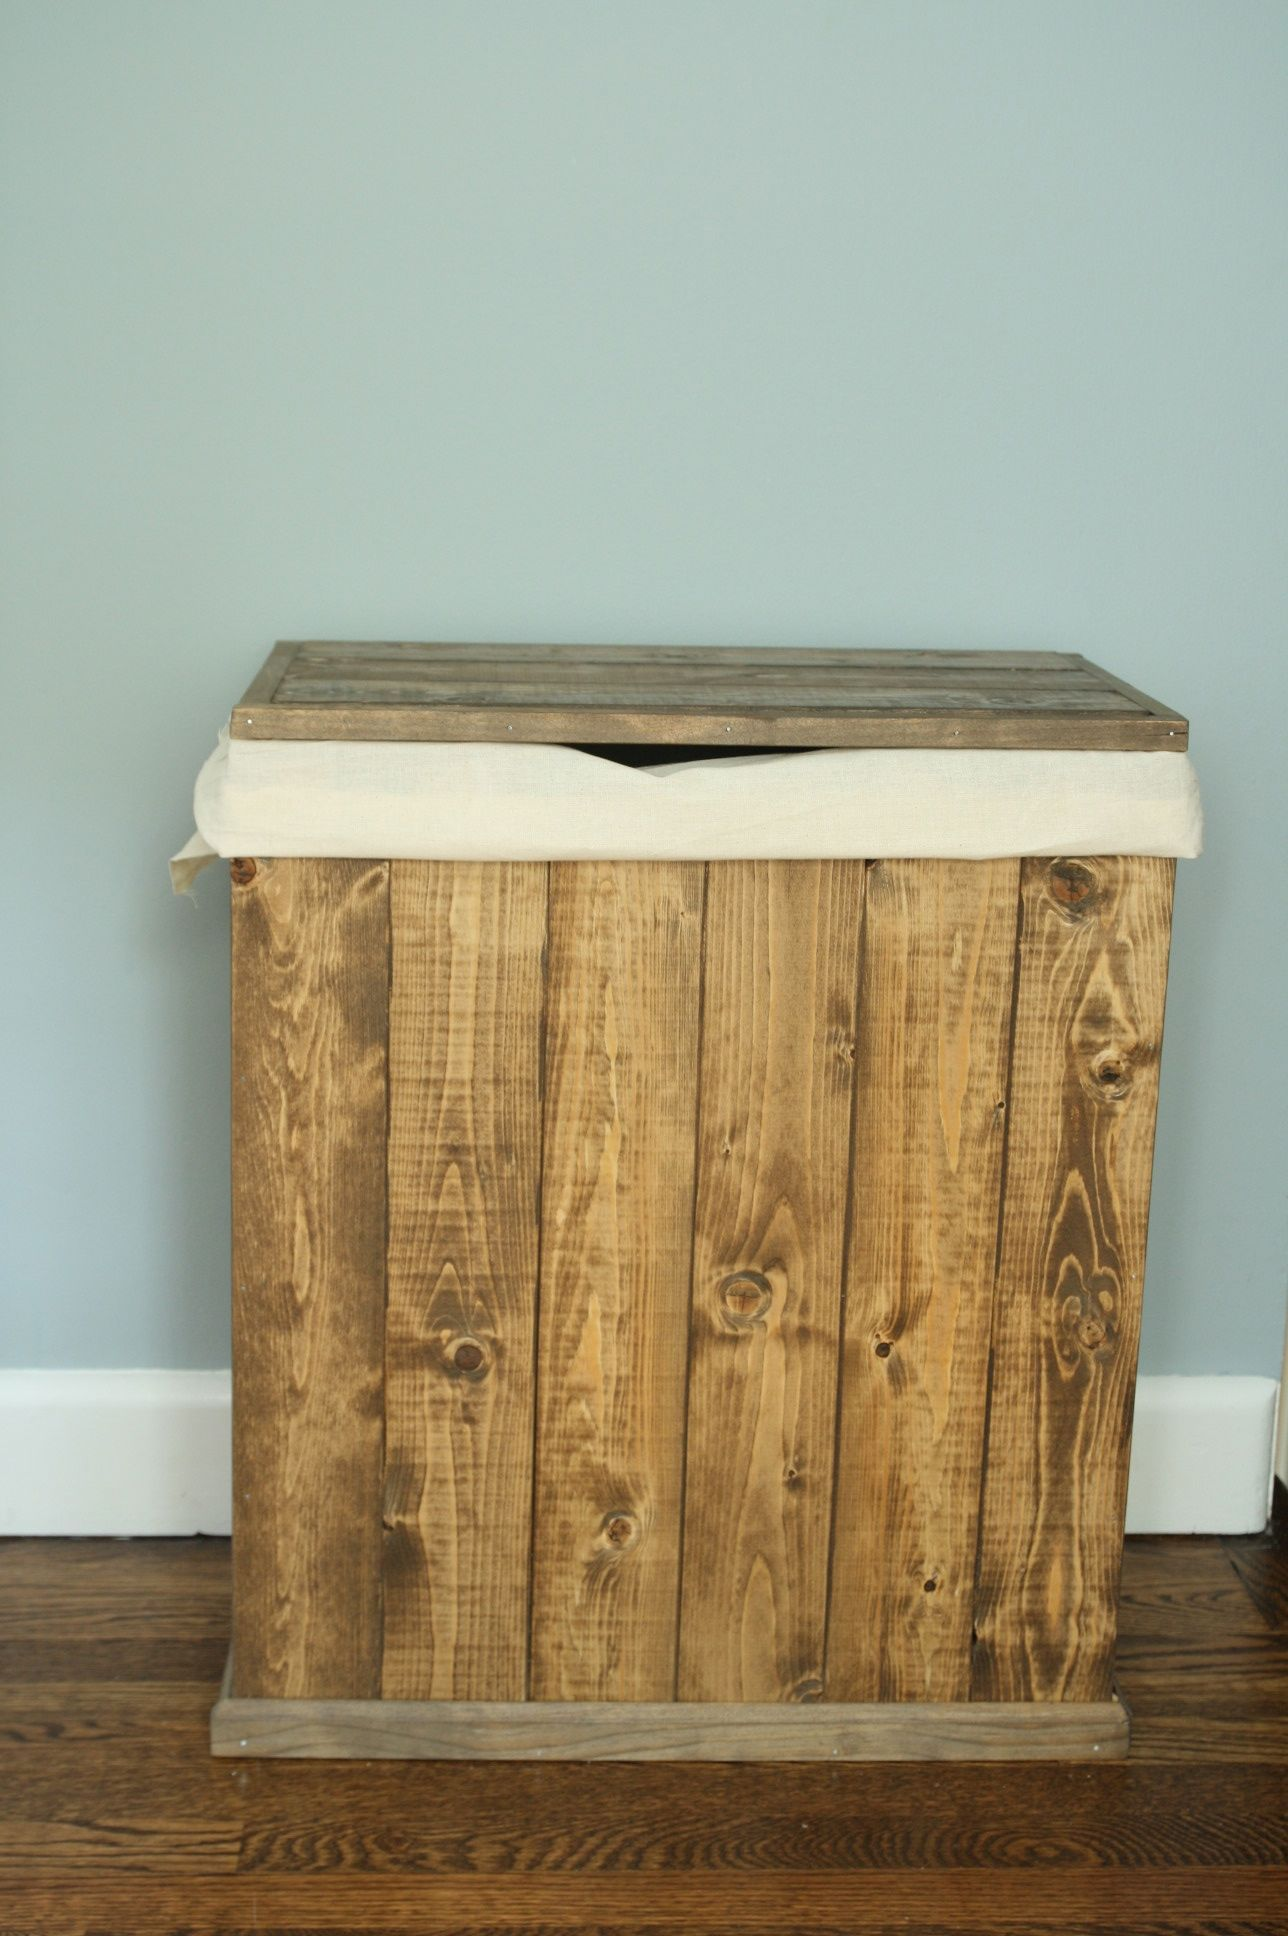 Diy Wooden Laundry Hamper Wooden Laundry Hamper Wood Laundry